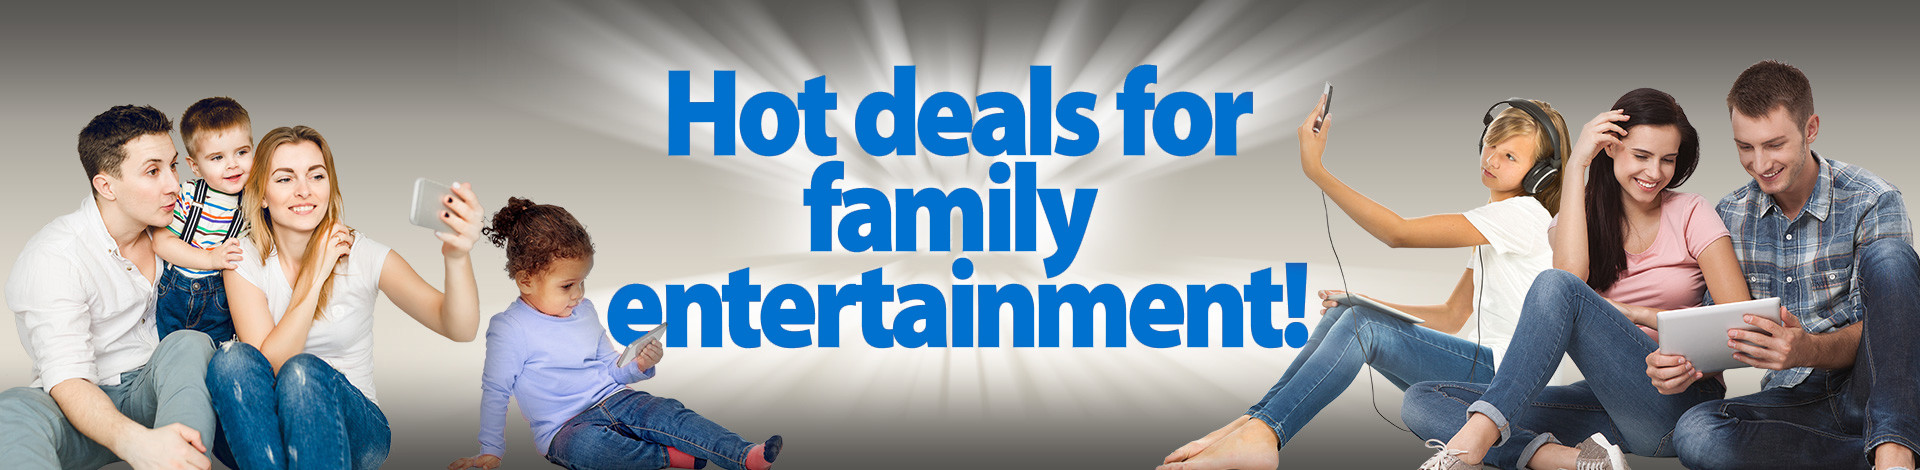 Hot deals for family entertainment!